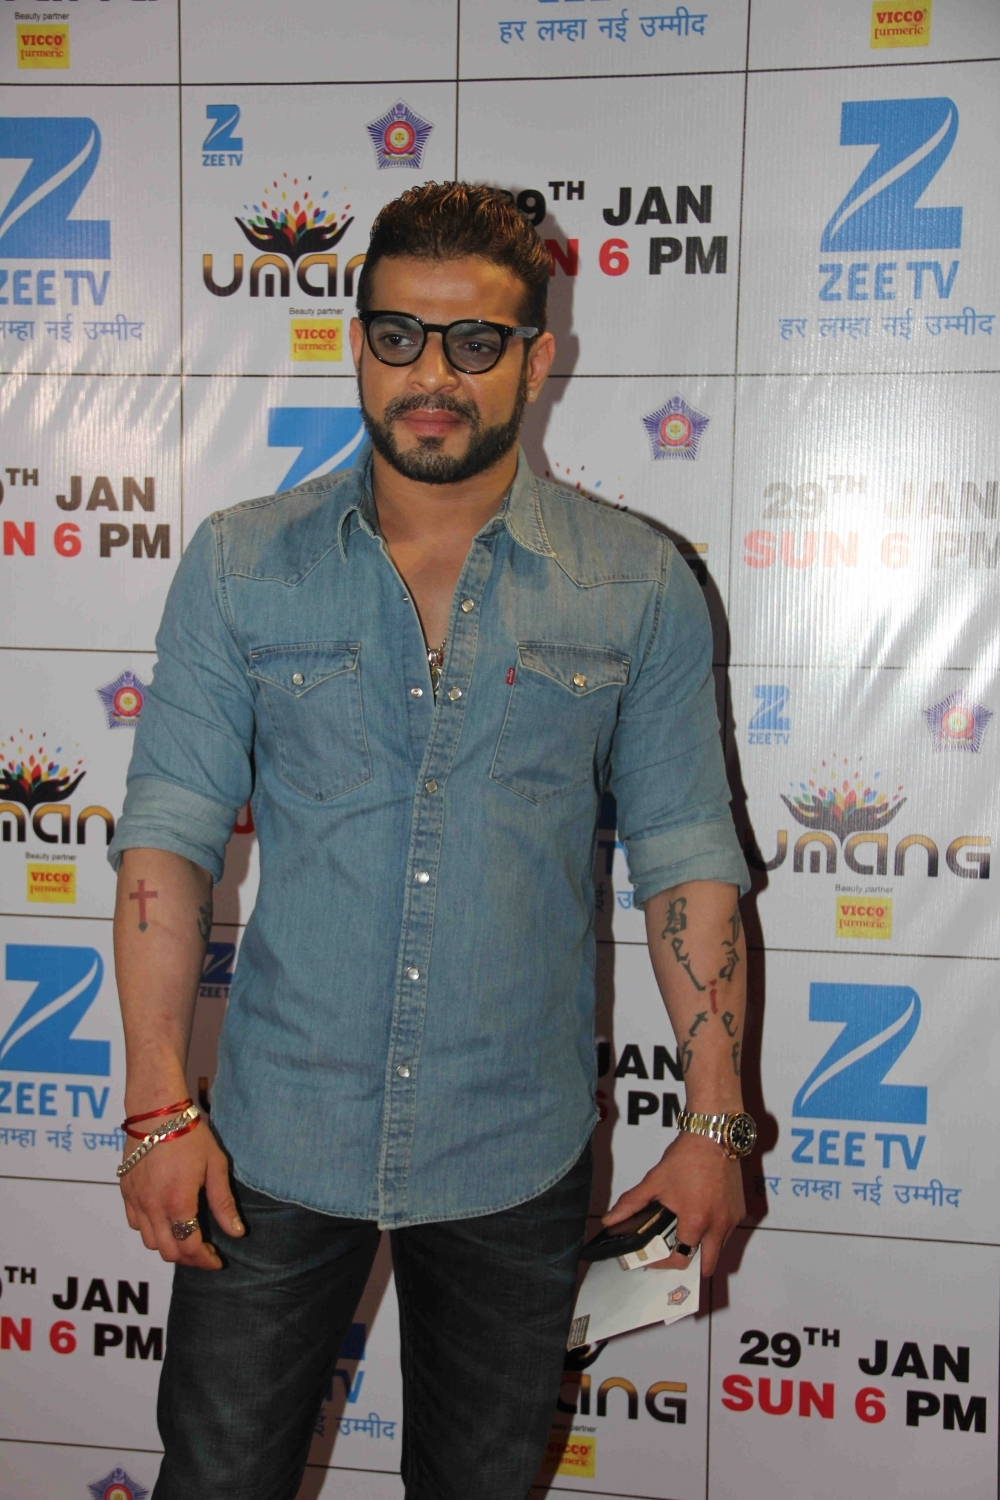 Mumbai: Actor Karan Kundrra during the Umang Mumbai Police Show 2017 in Mumbai on Jan 22, 2017. (Photo: IANS)